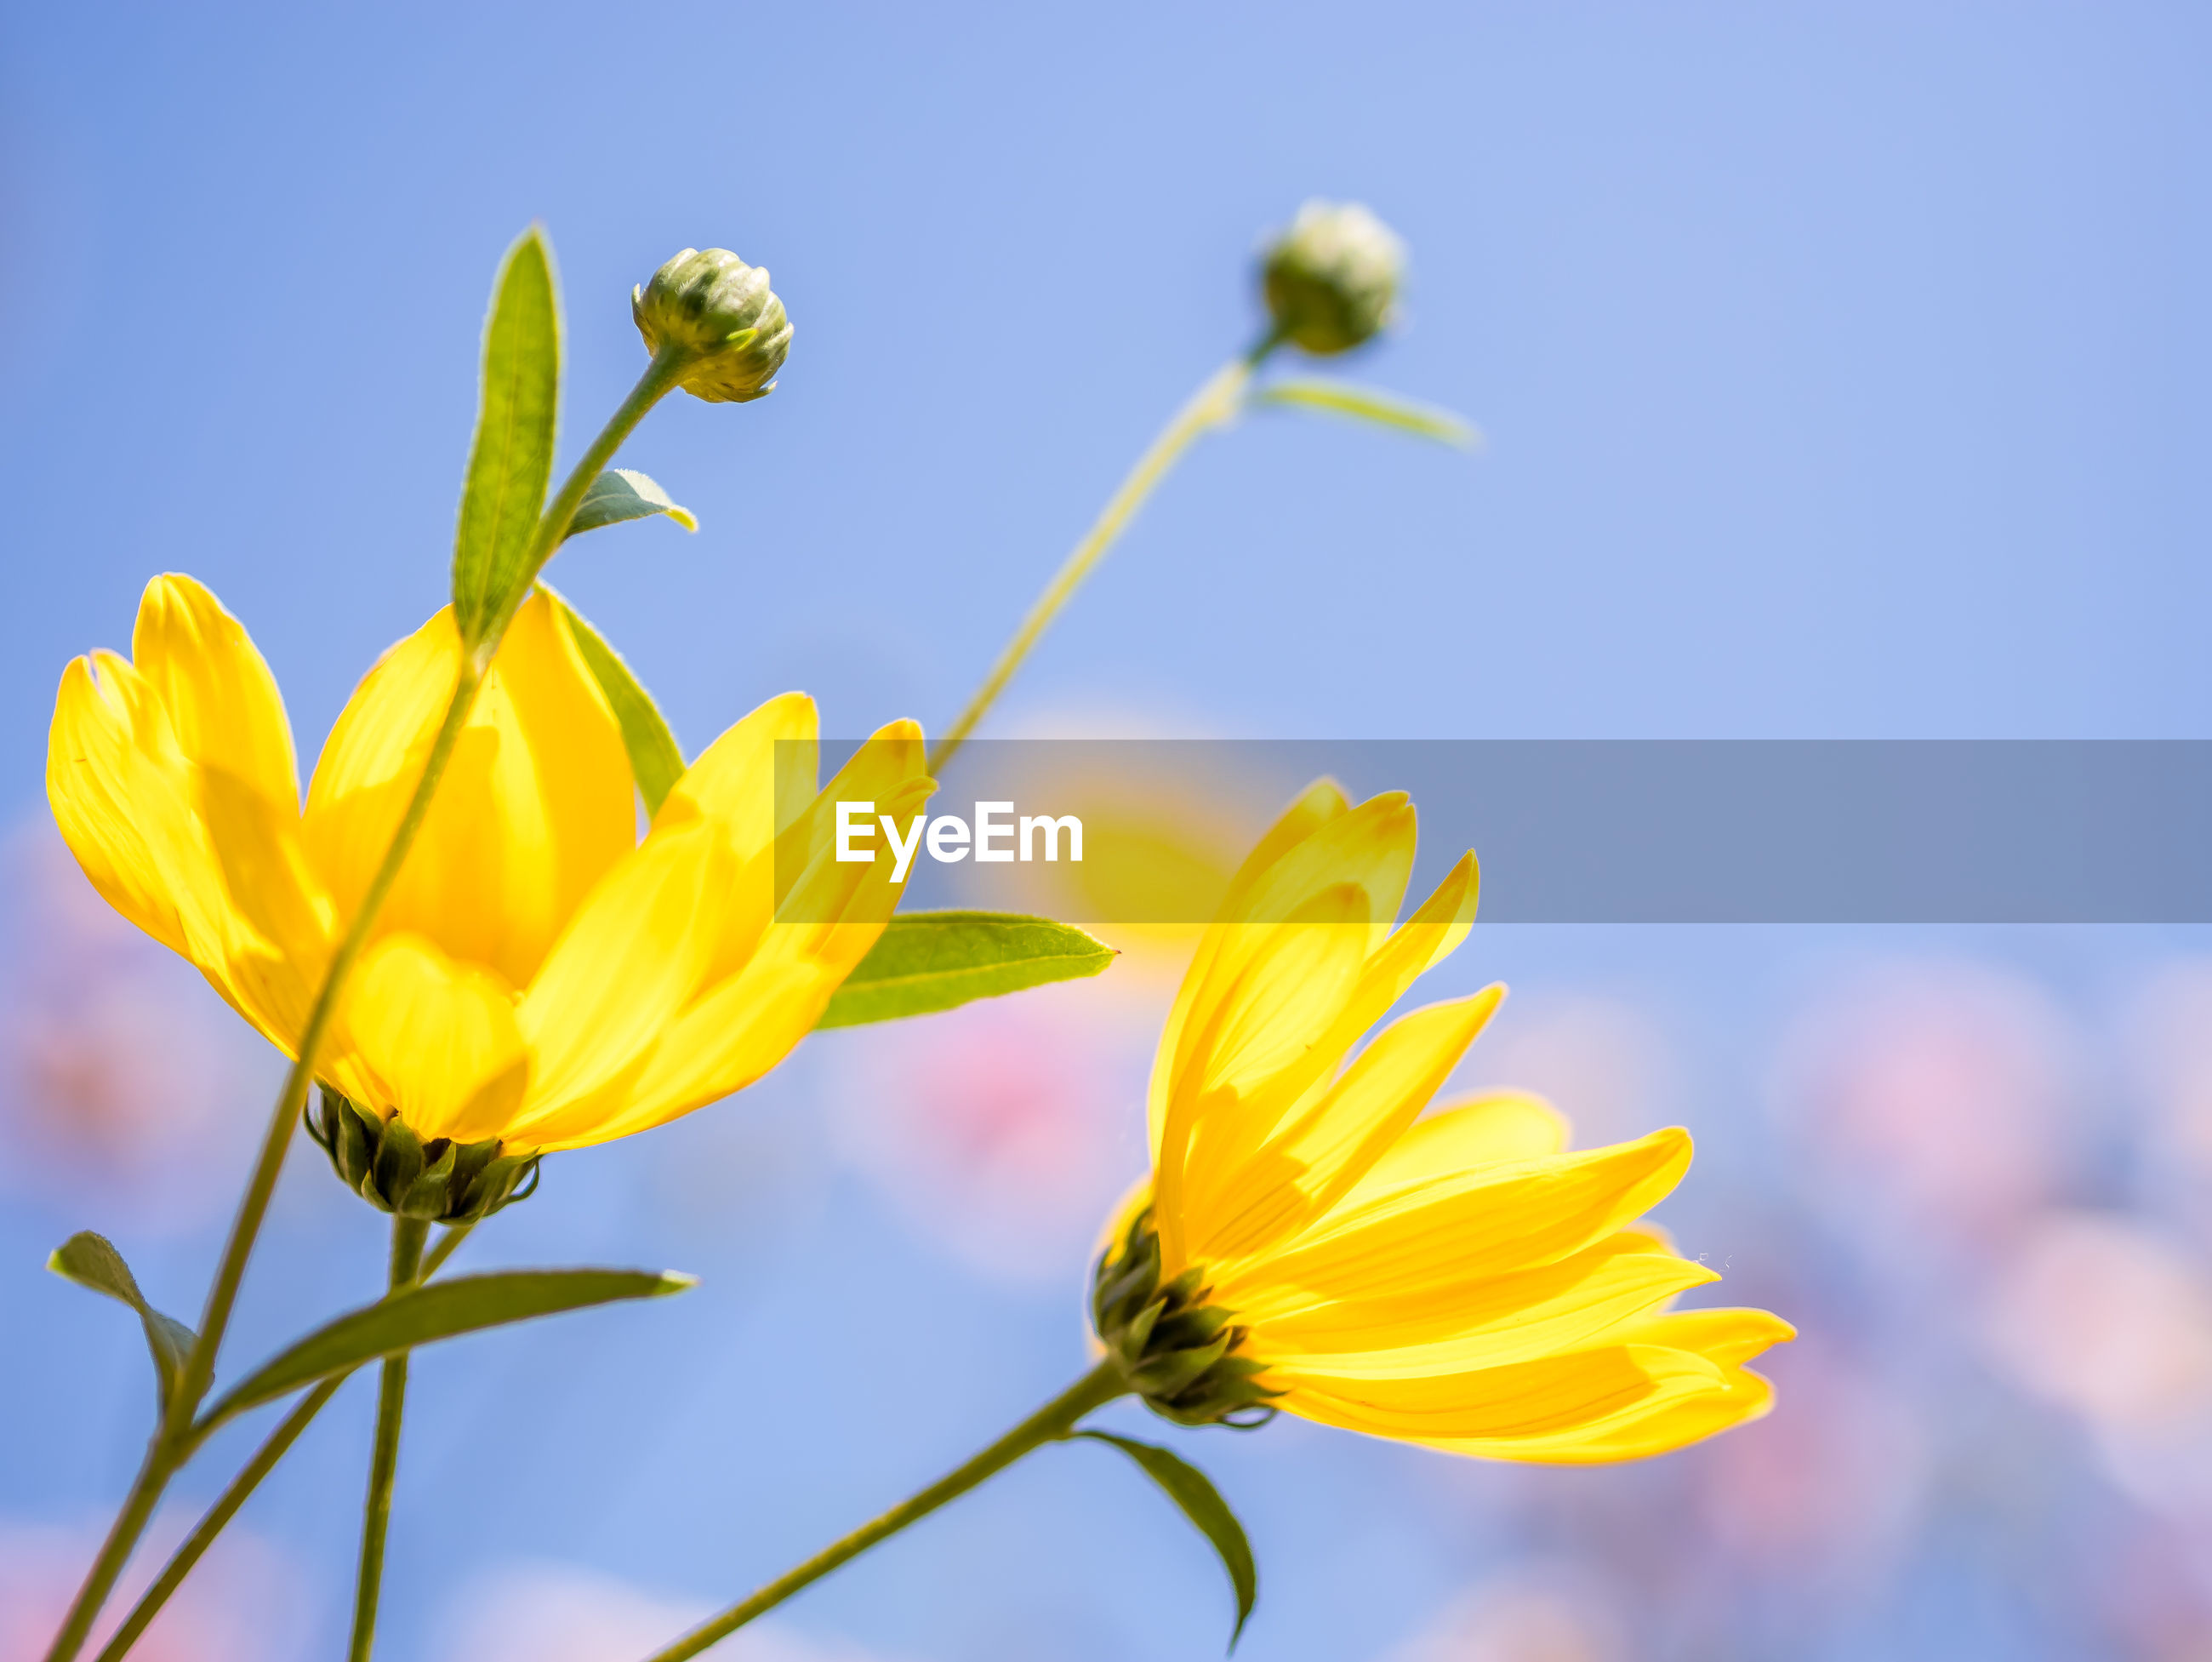 Low angle view of yellow flowering plant against sky, wild sunflowers